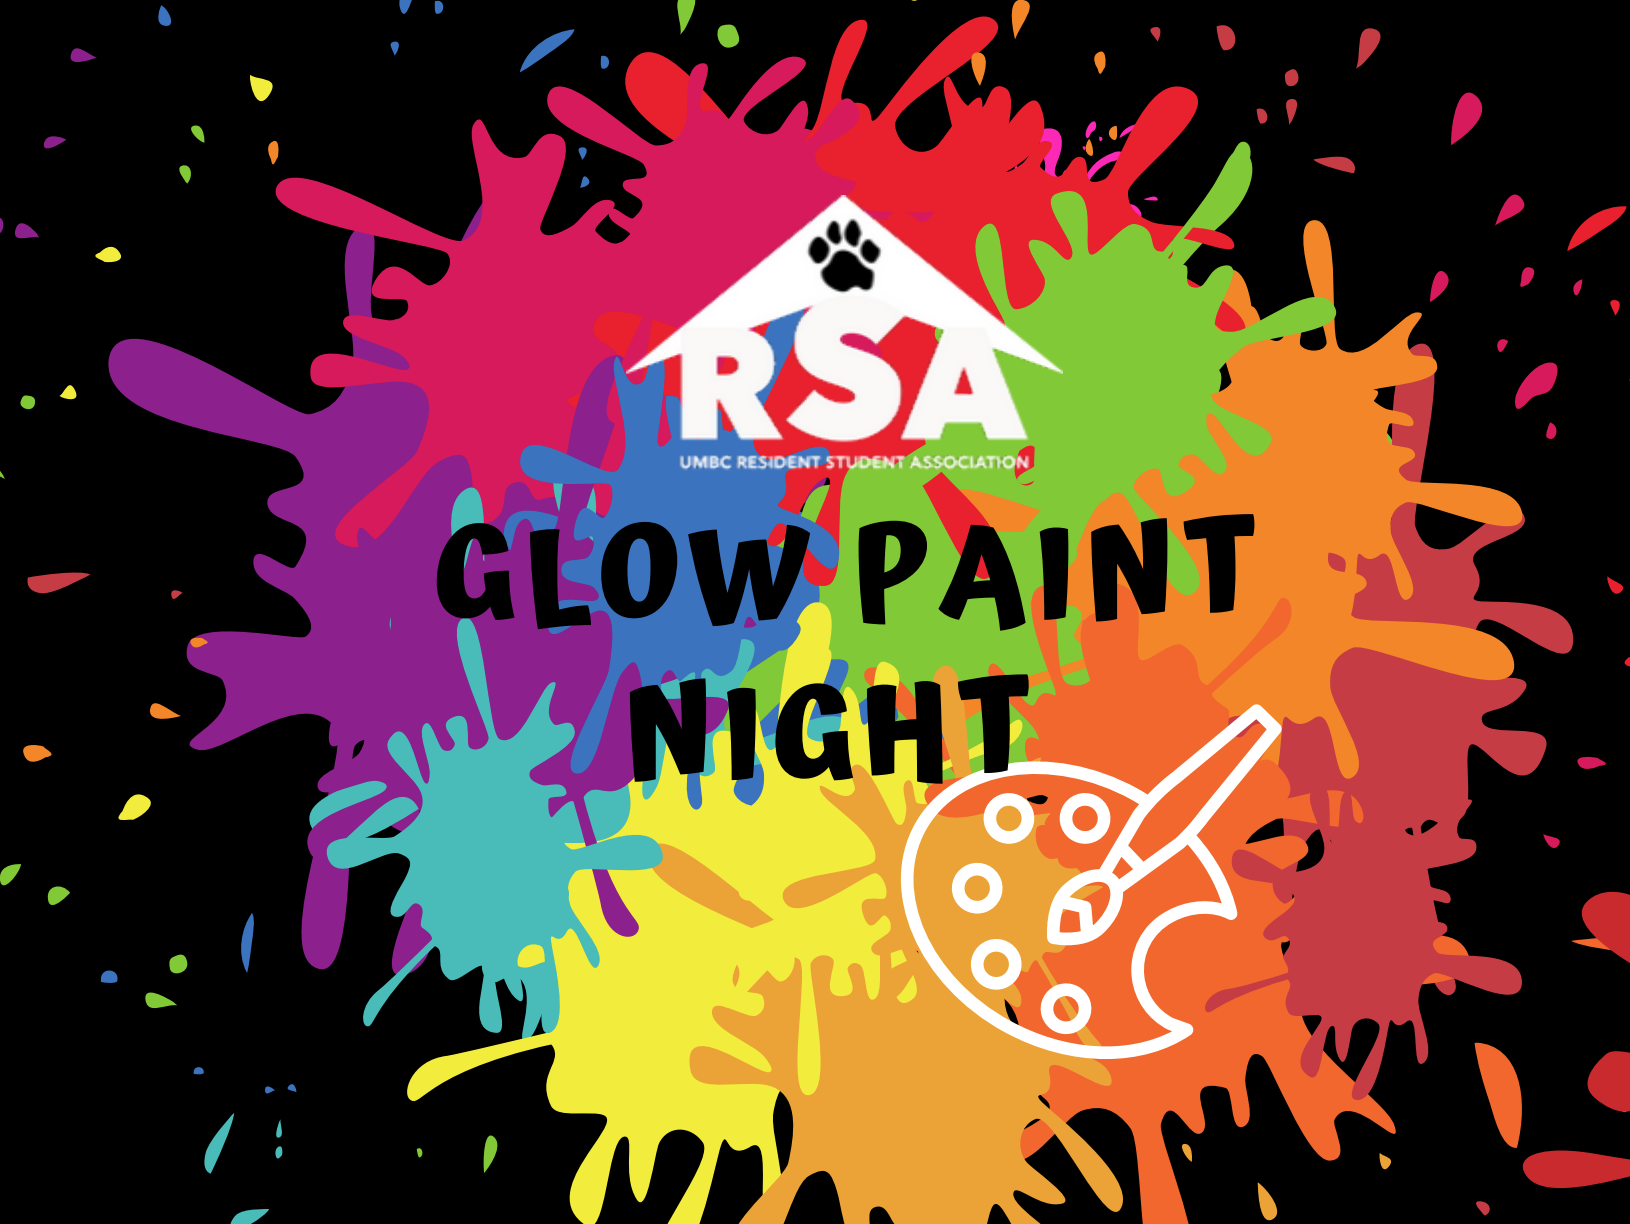 10/26 Glow Paint Night 9:30pm-11:30pm in Dhall!